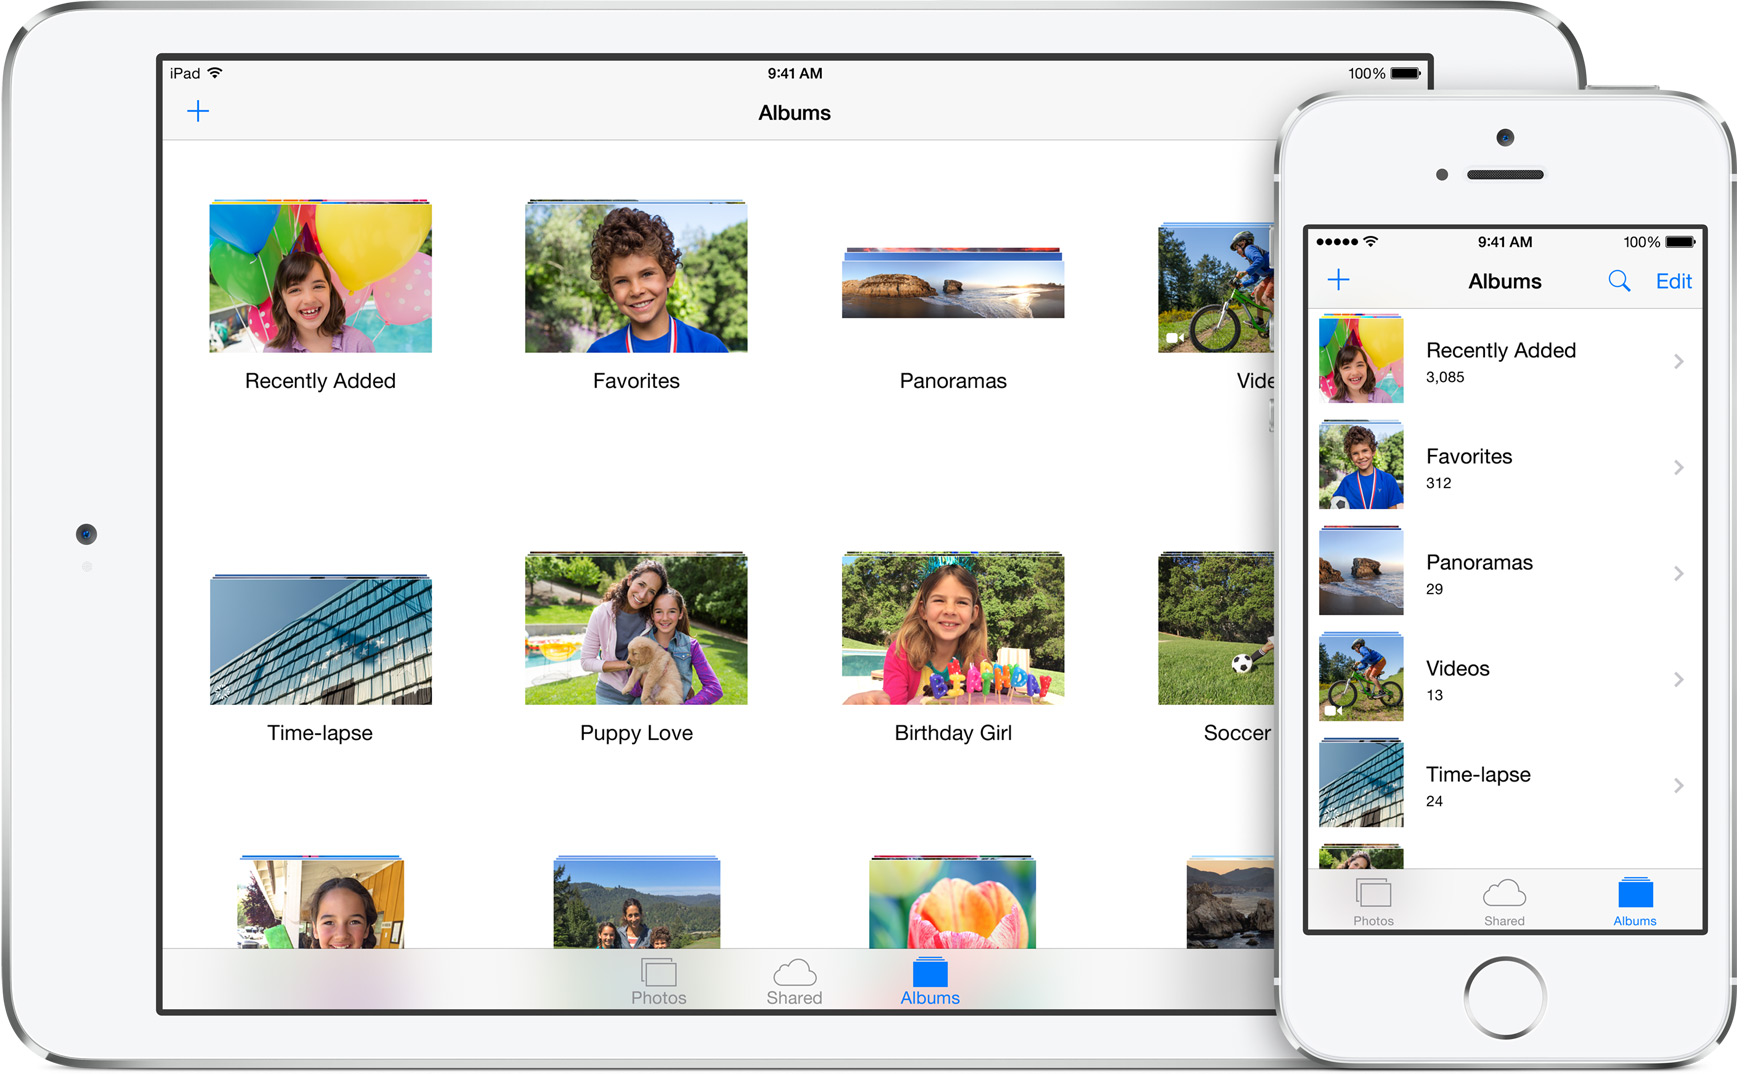 iOS 8 Photos App